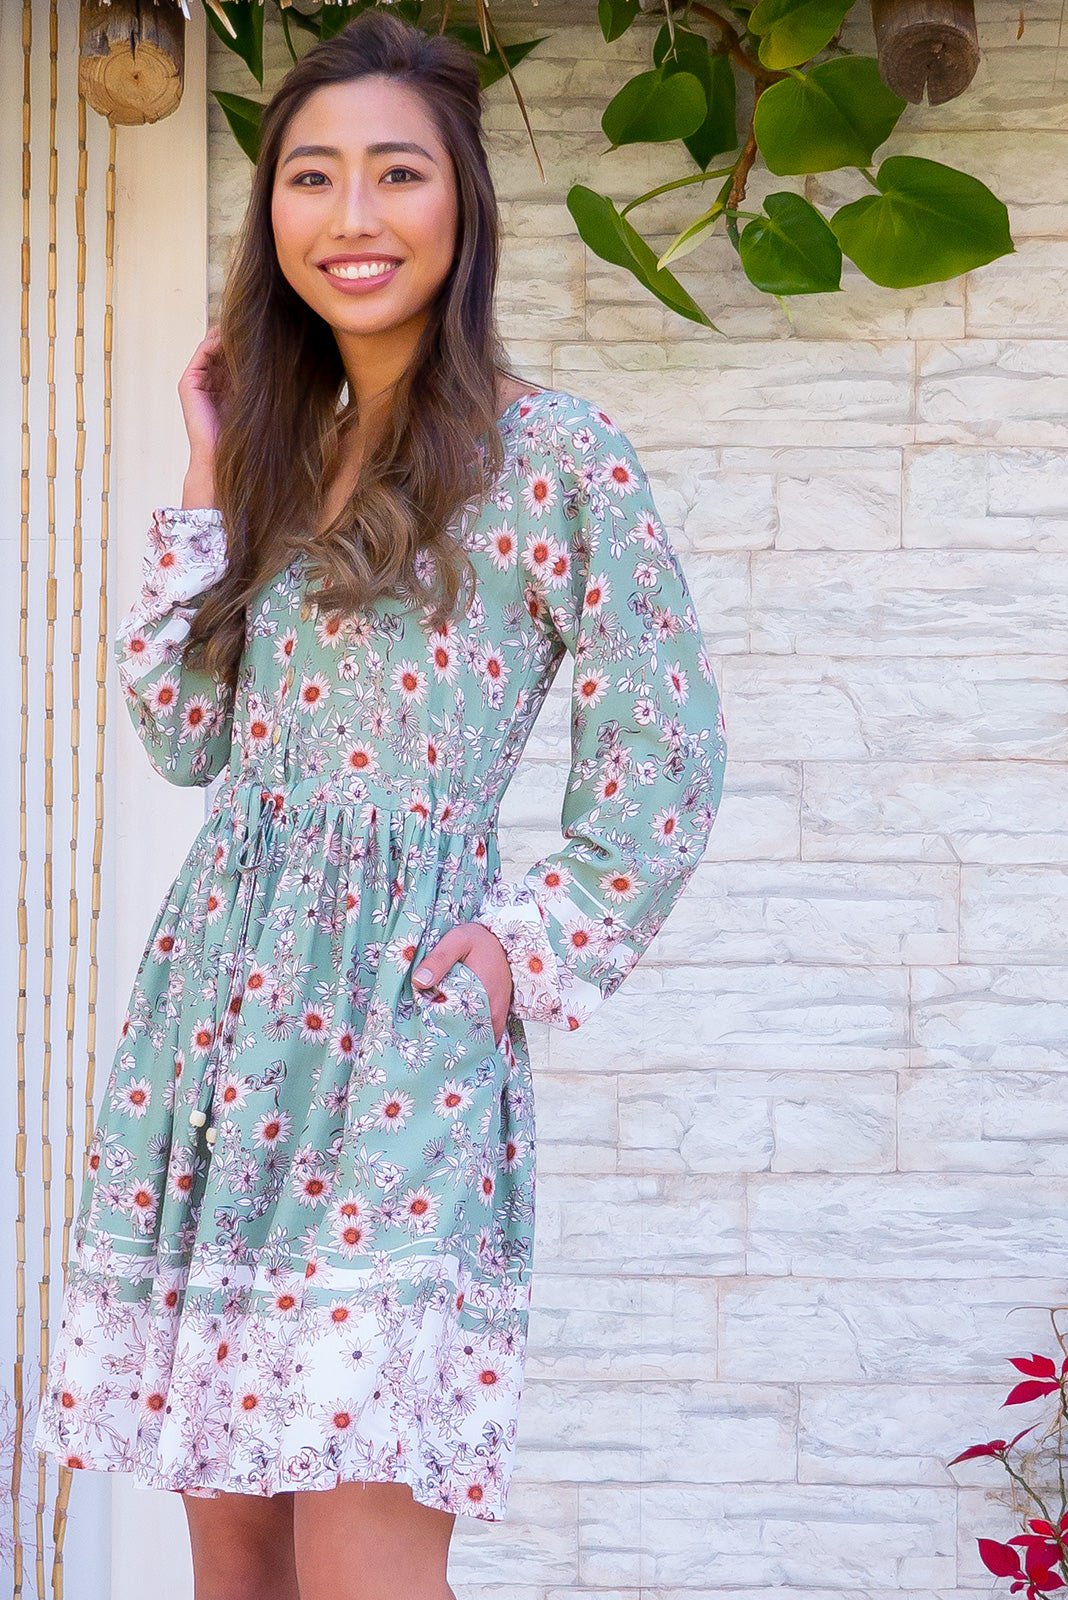 Jennifer Pistachio Green dress is is a bohemian style Spring inspired mini dress. A pastel green with floral pattern. Very sweet and feminine. Long sleeves and drawstring. 100% rayon.